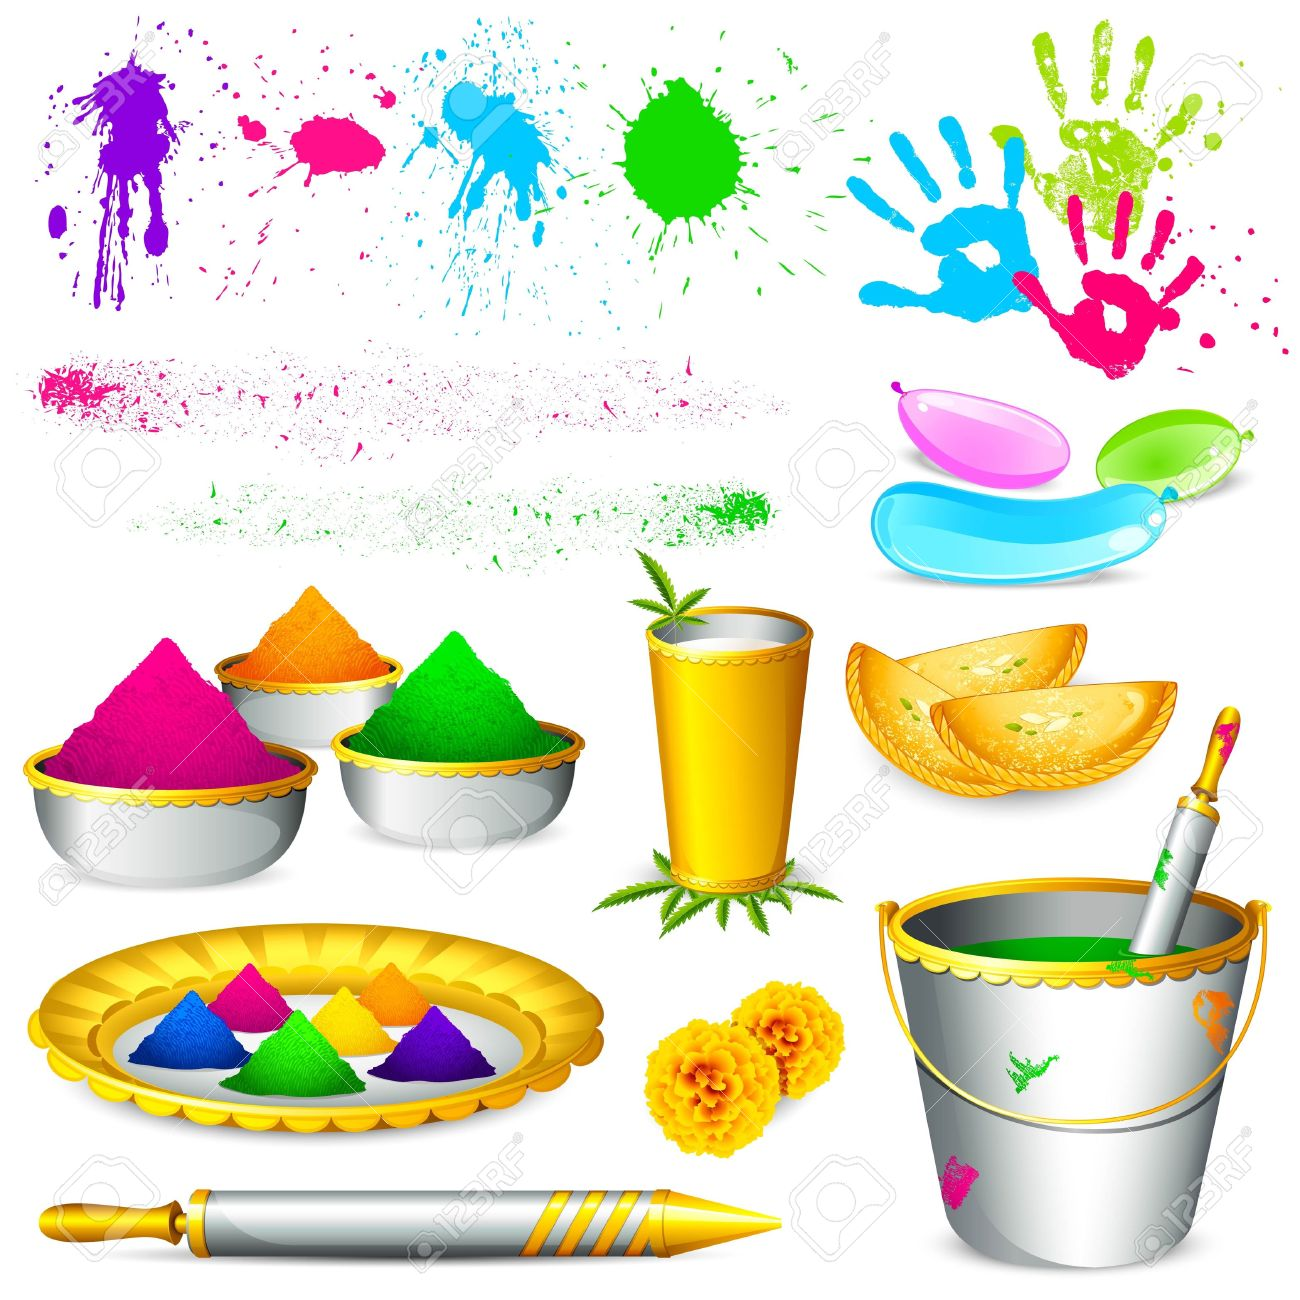 Holi festival pictures clipart.